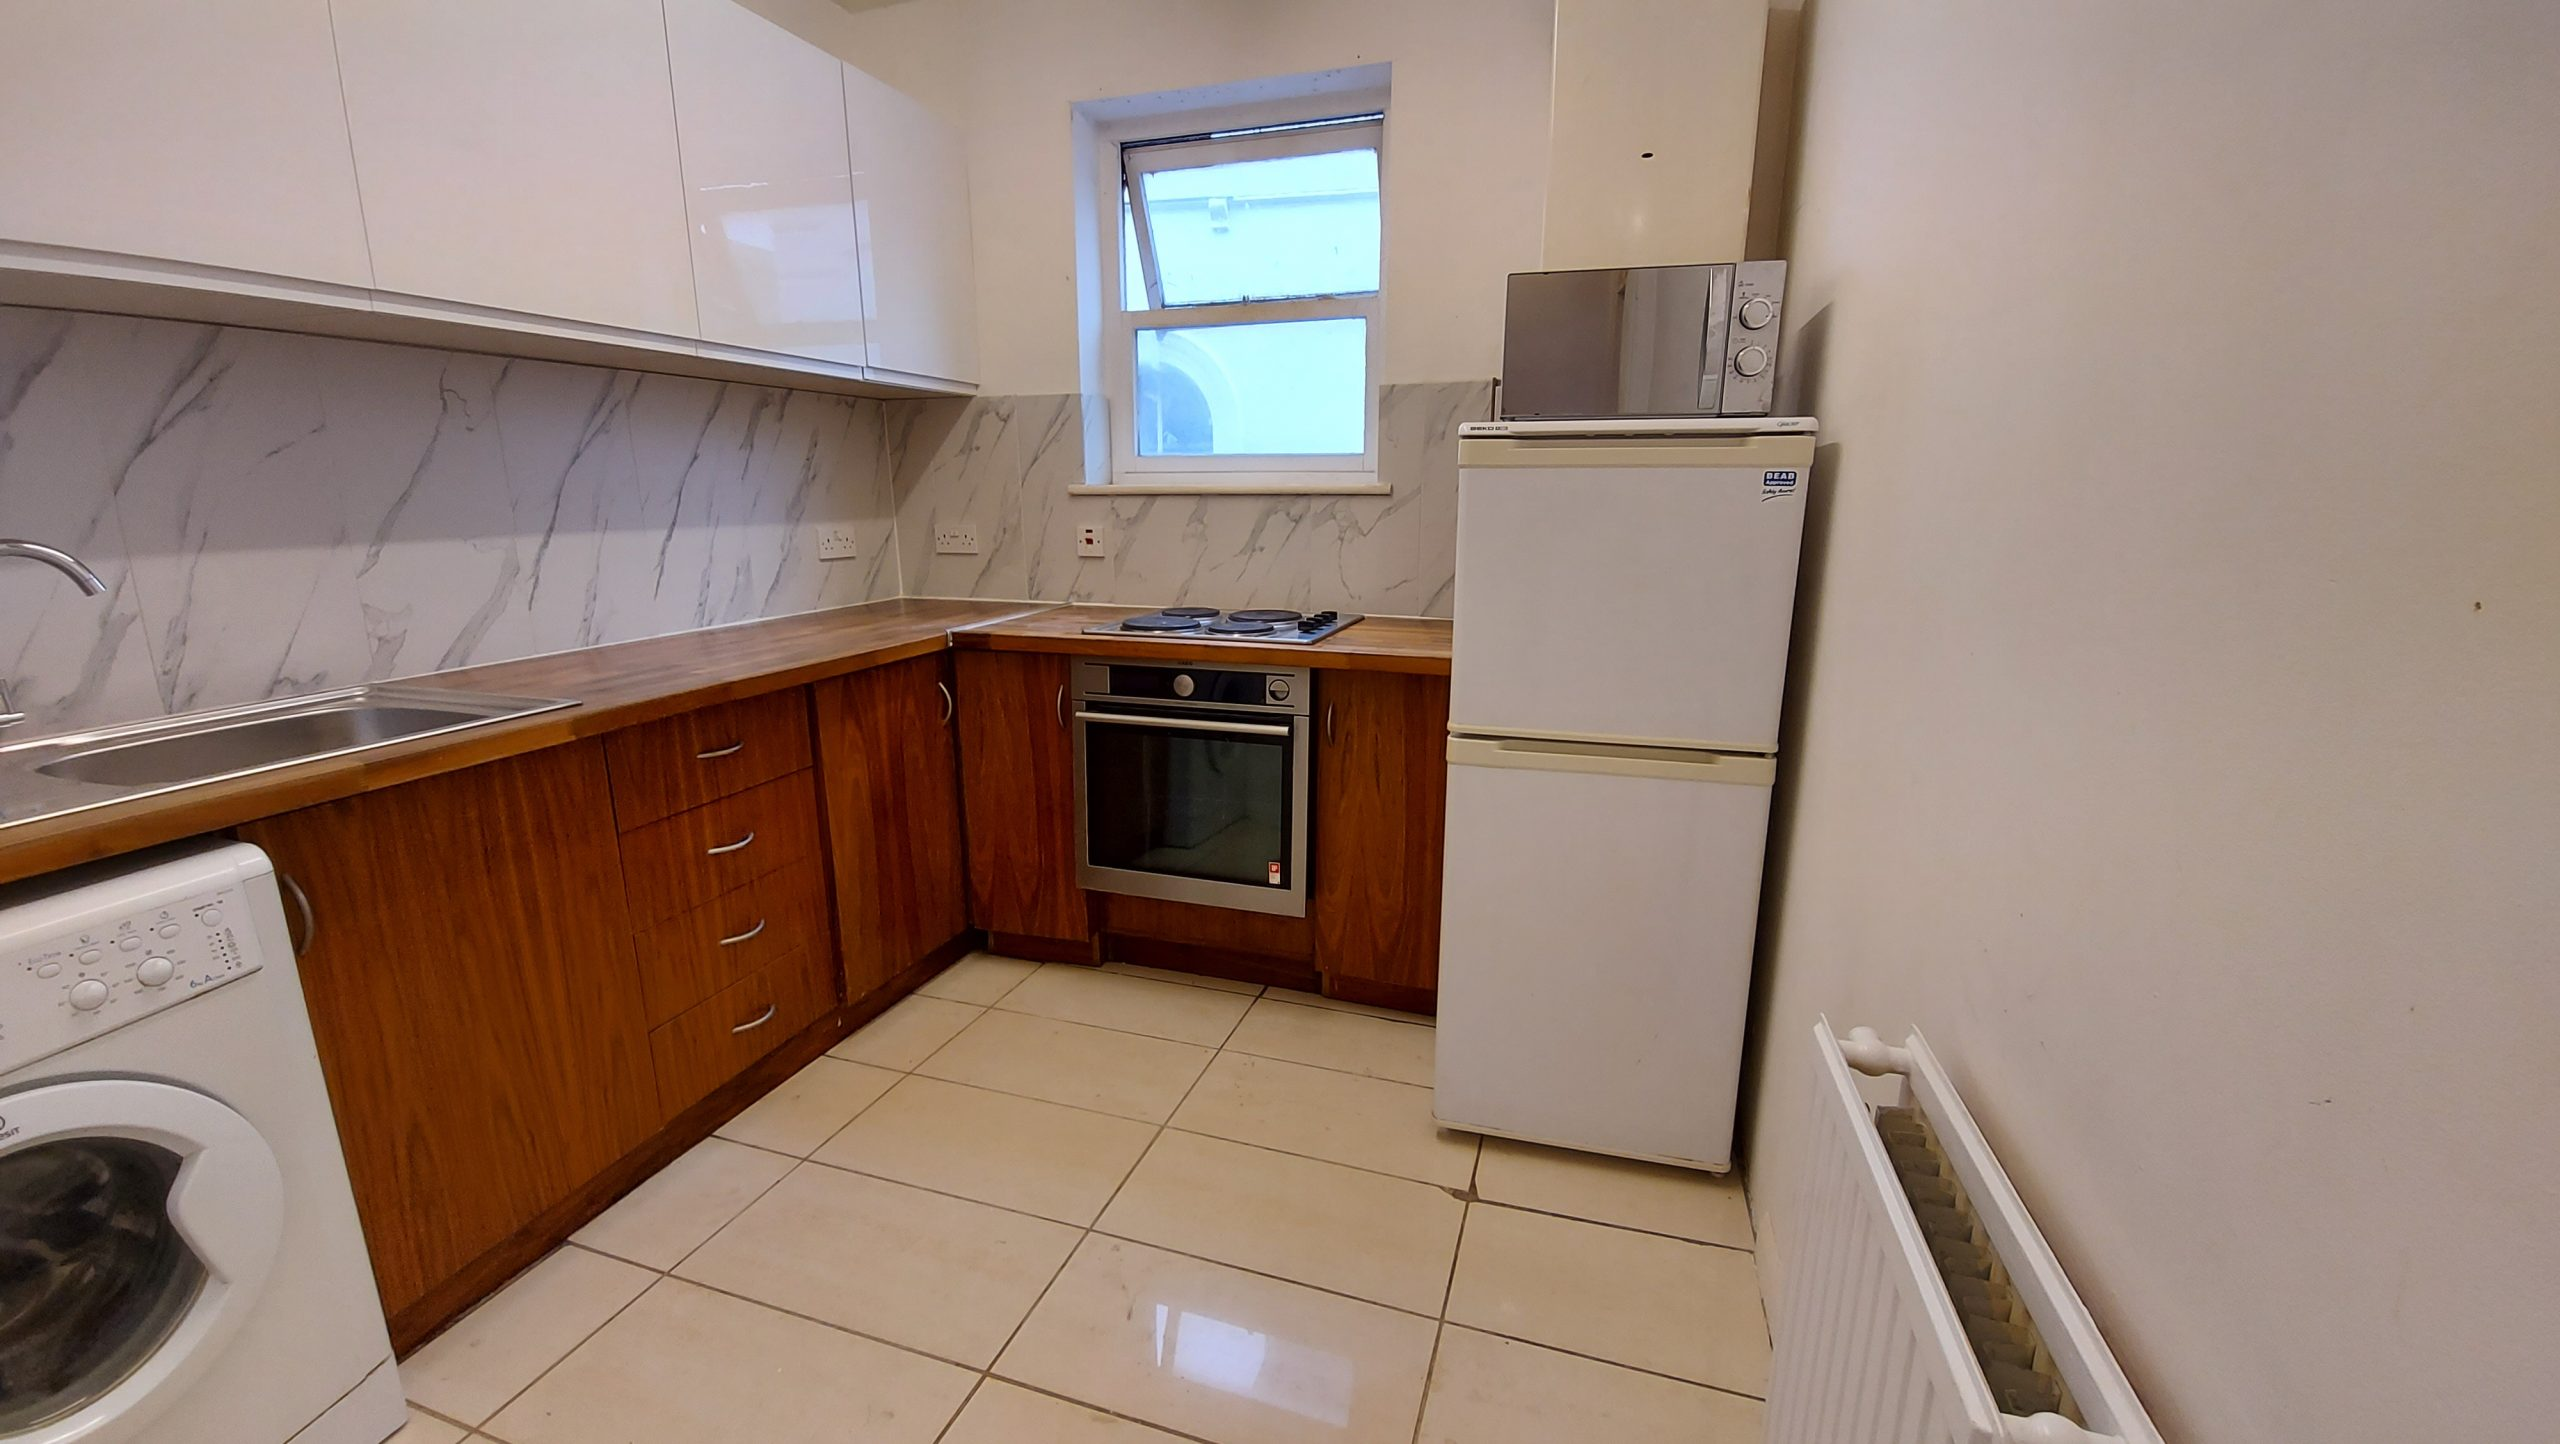 2 Bed Flat Hornsey Road N19 Islington